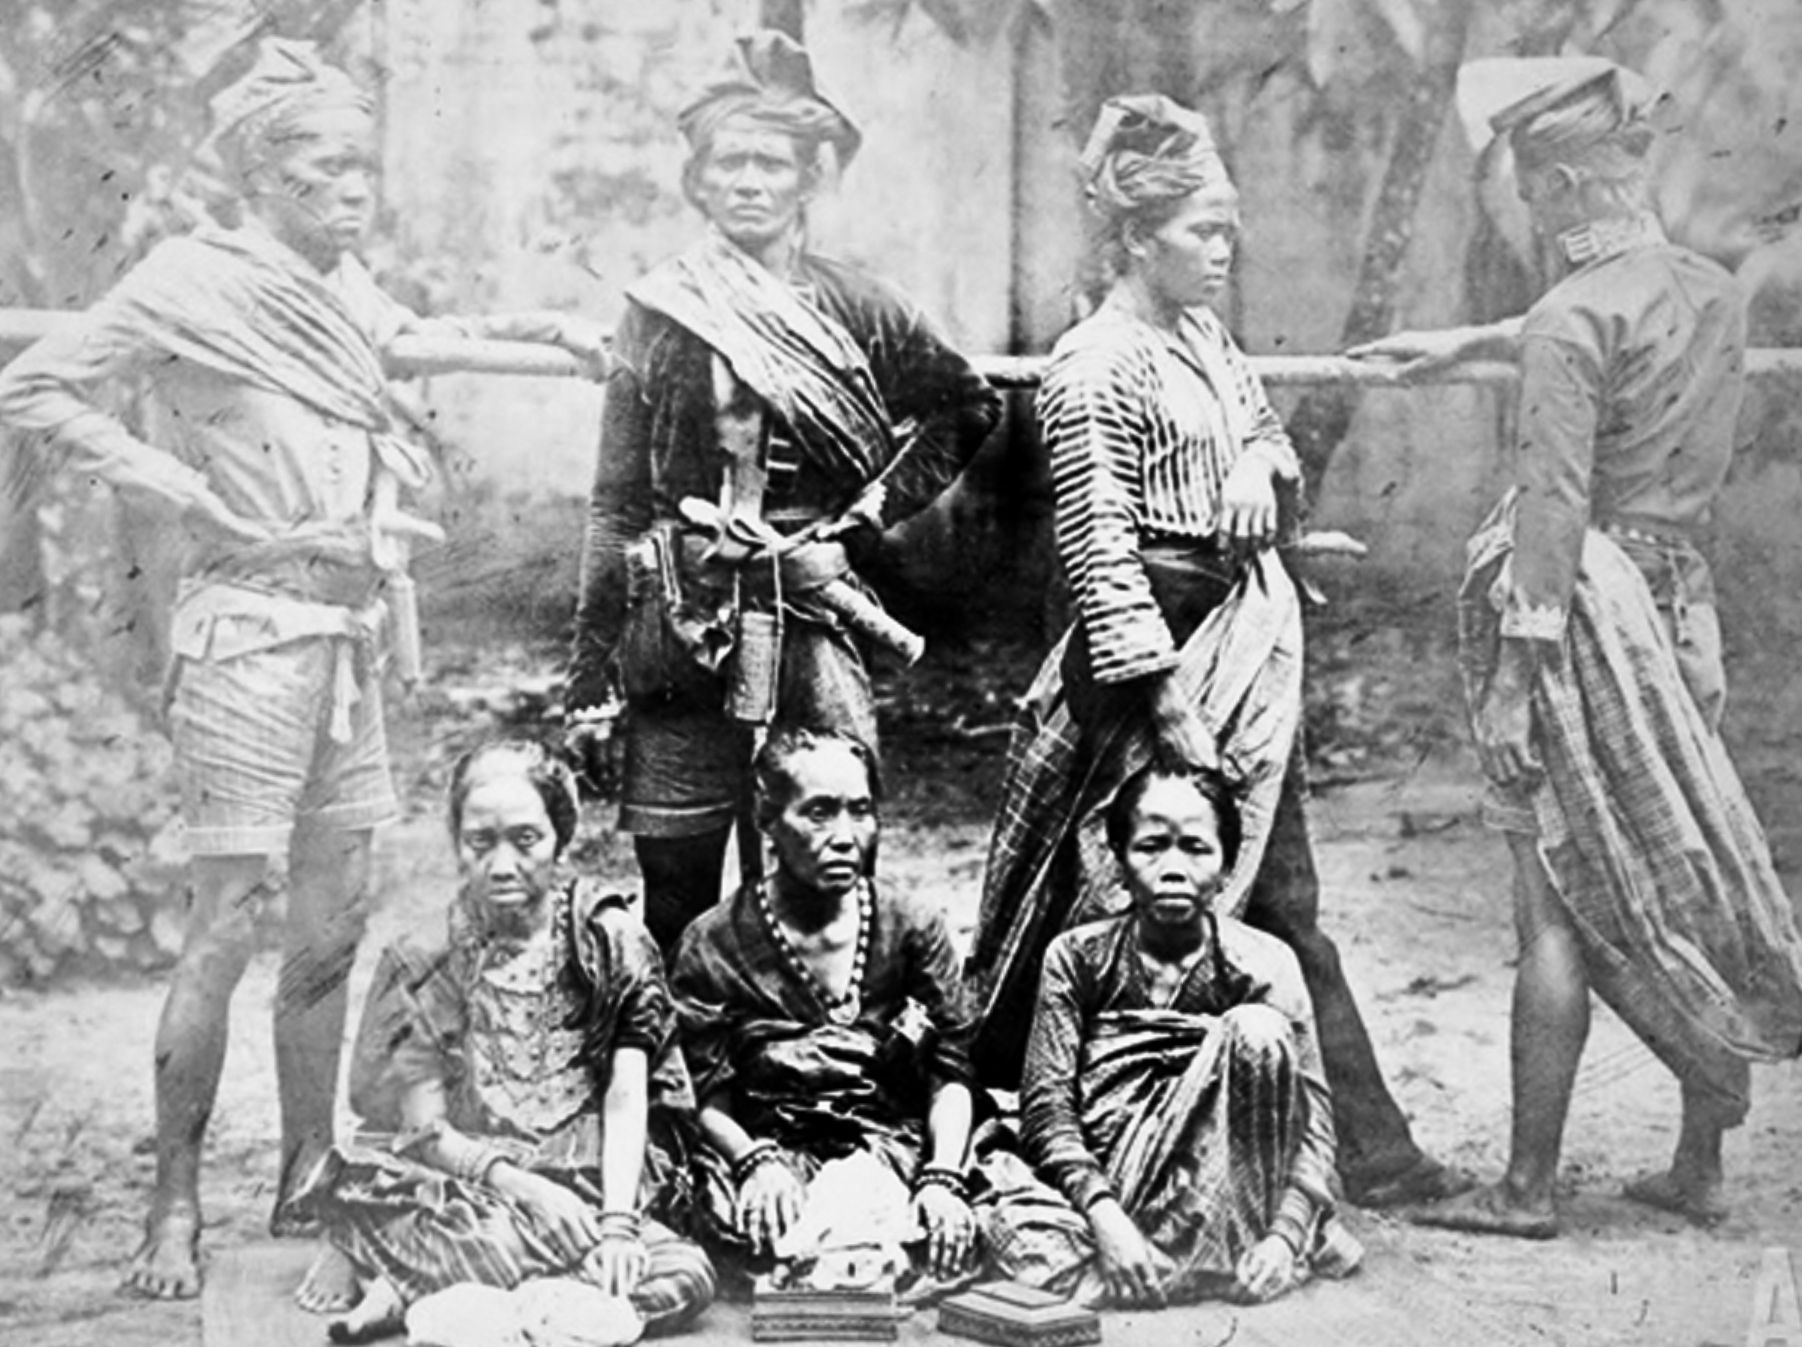 Bugis with keris  Rumpun Melayu  Dutch east indies, Sejarah indonesia, dan East indies